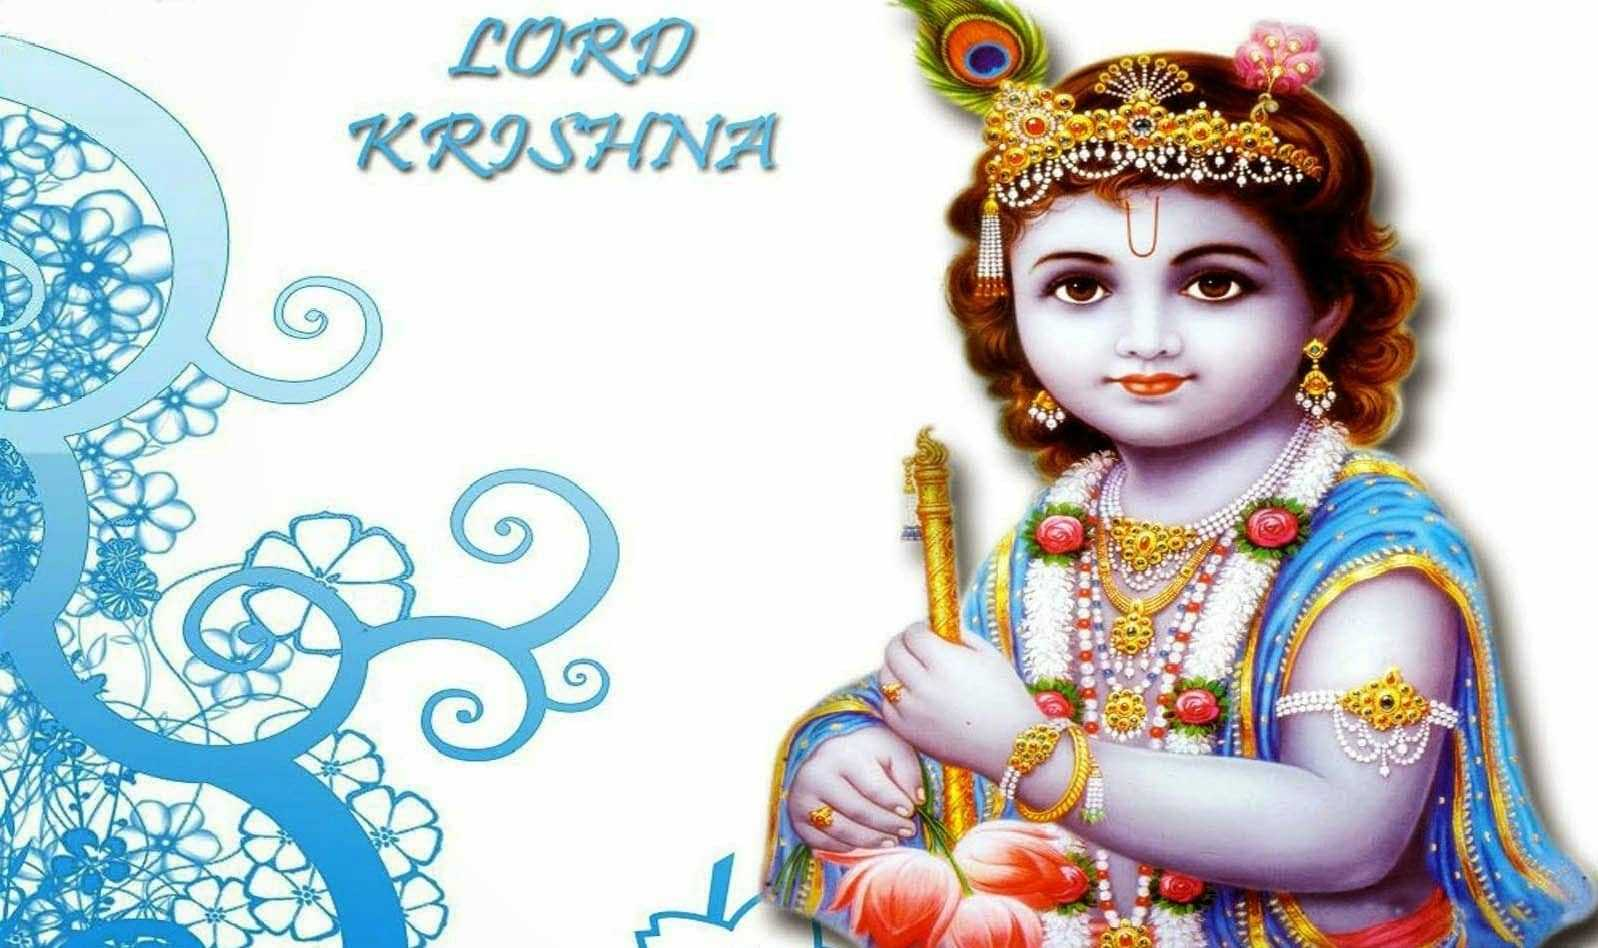 Shri Krishna Janmashtami Images 2017 Photos Fb Free